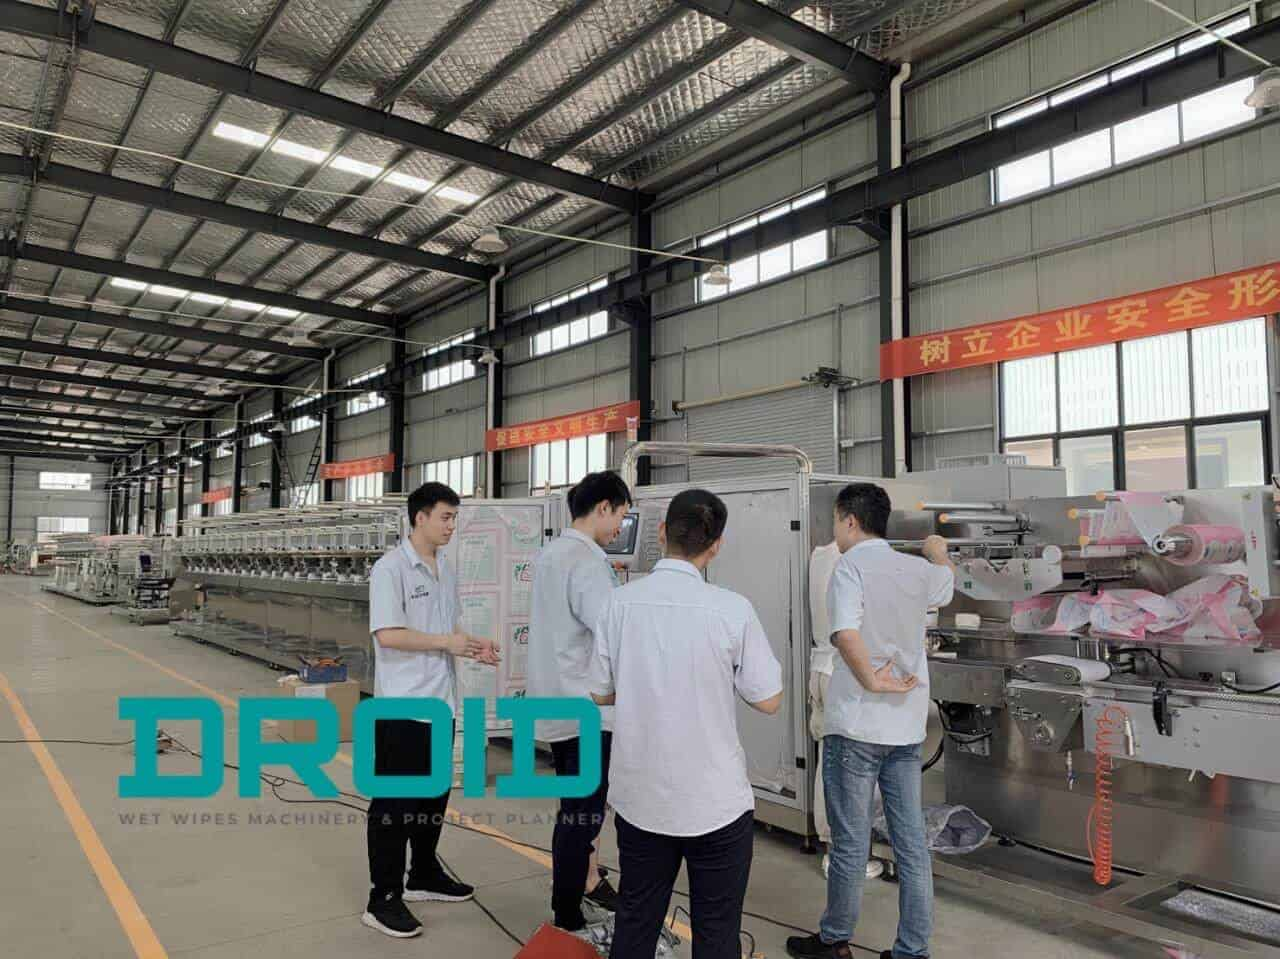 baby wet wipes packaging machine manufacturer - Gallery